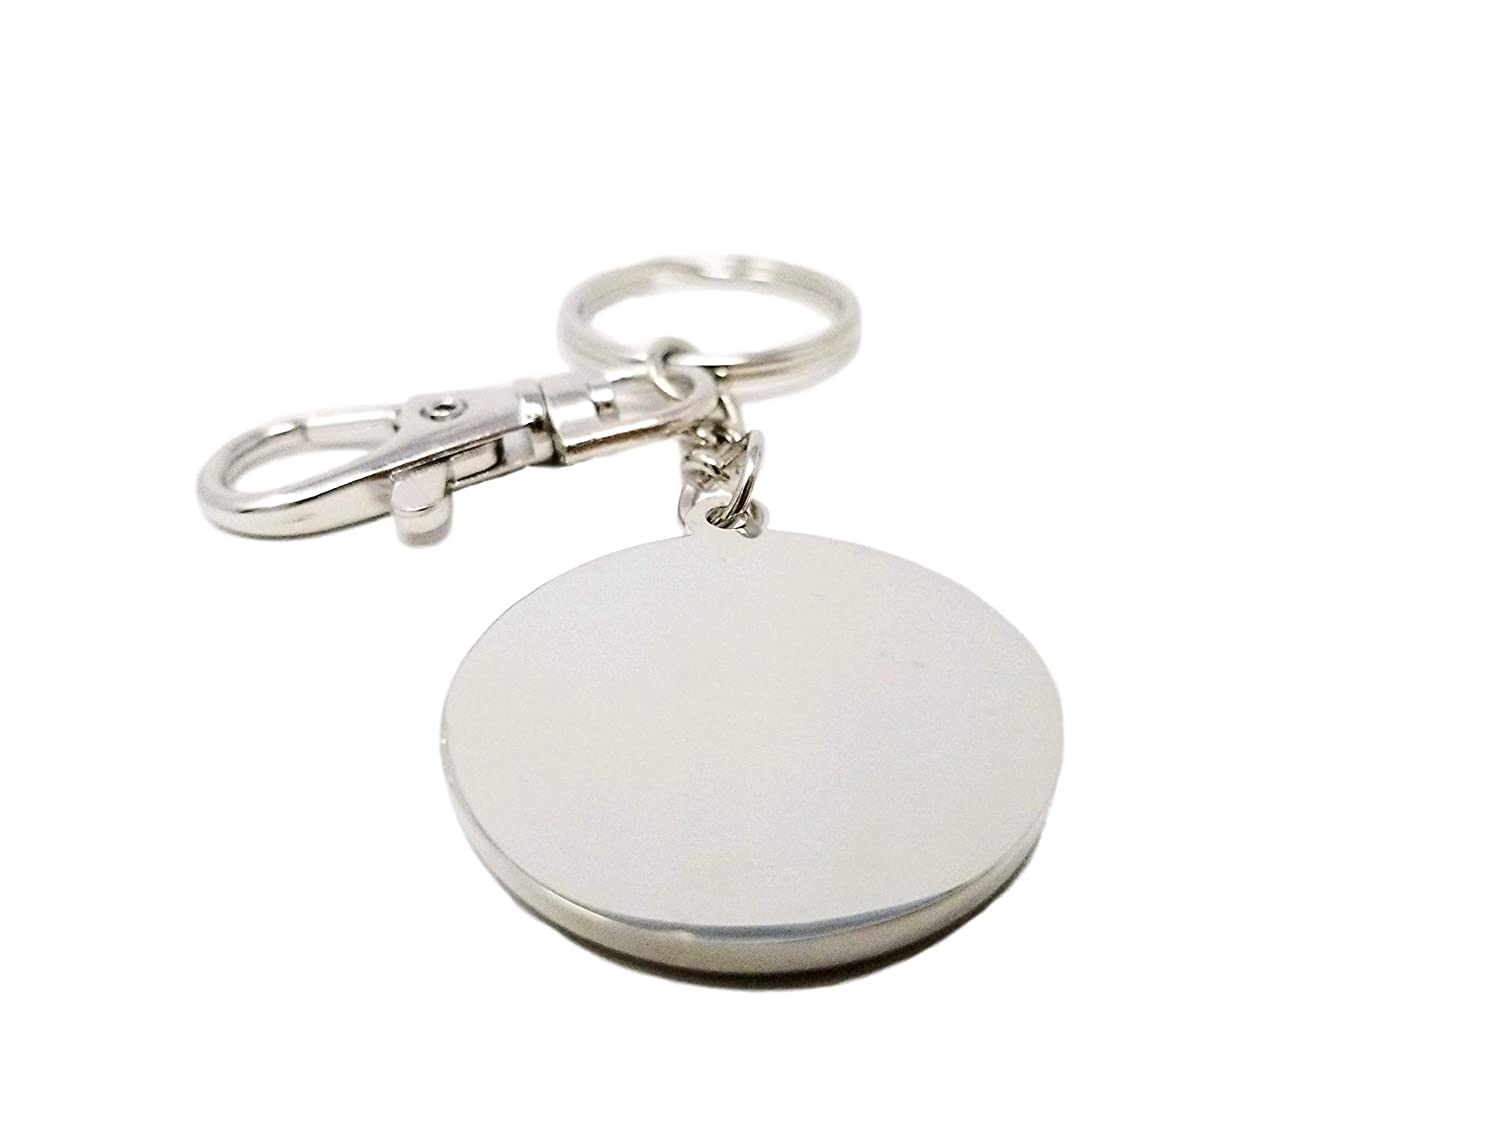 Ramsons Imports U.S Air Force Logo Stainless Steel Key-Chain Ramson/'s Imports MF1040AIR